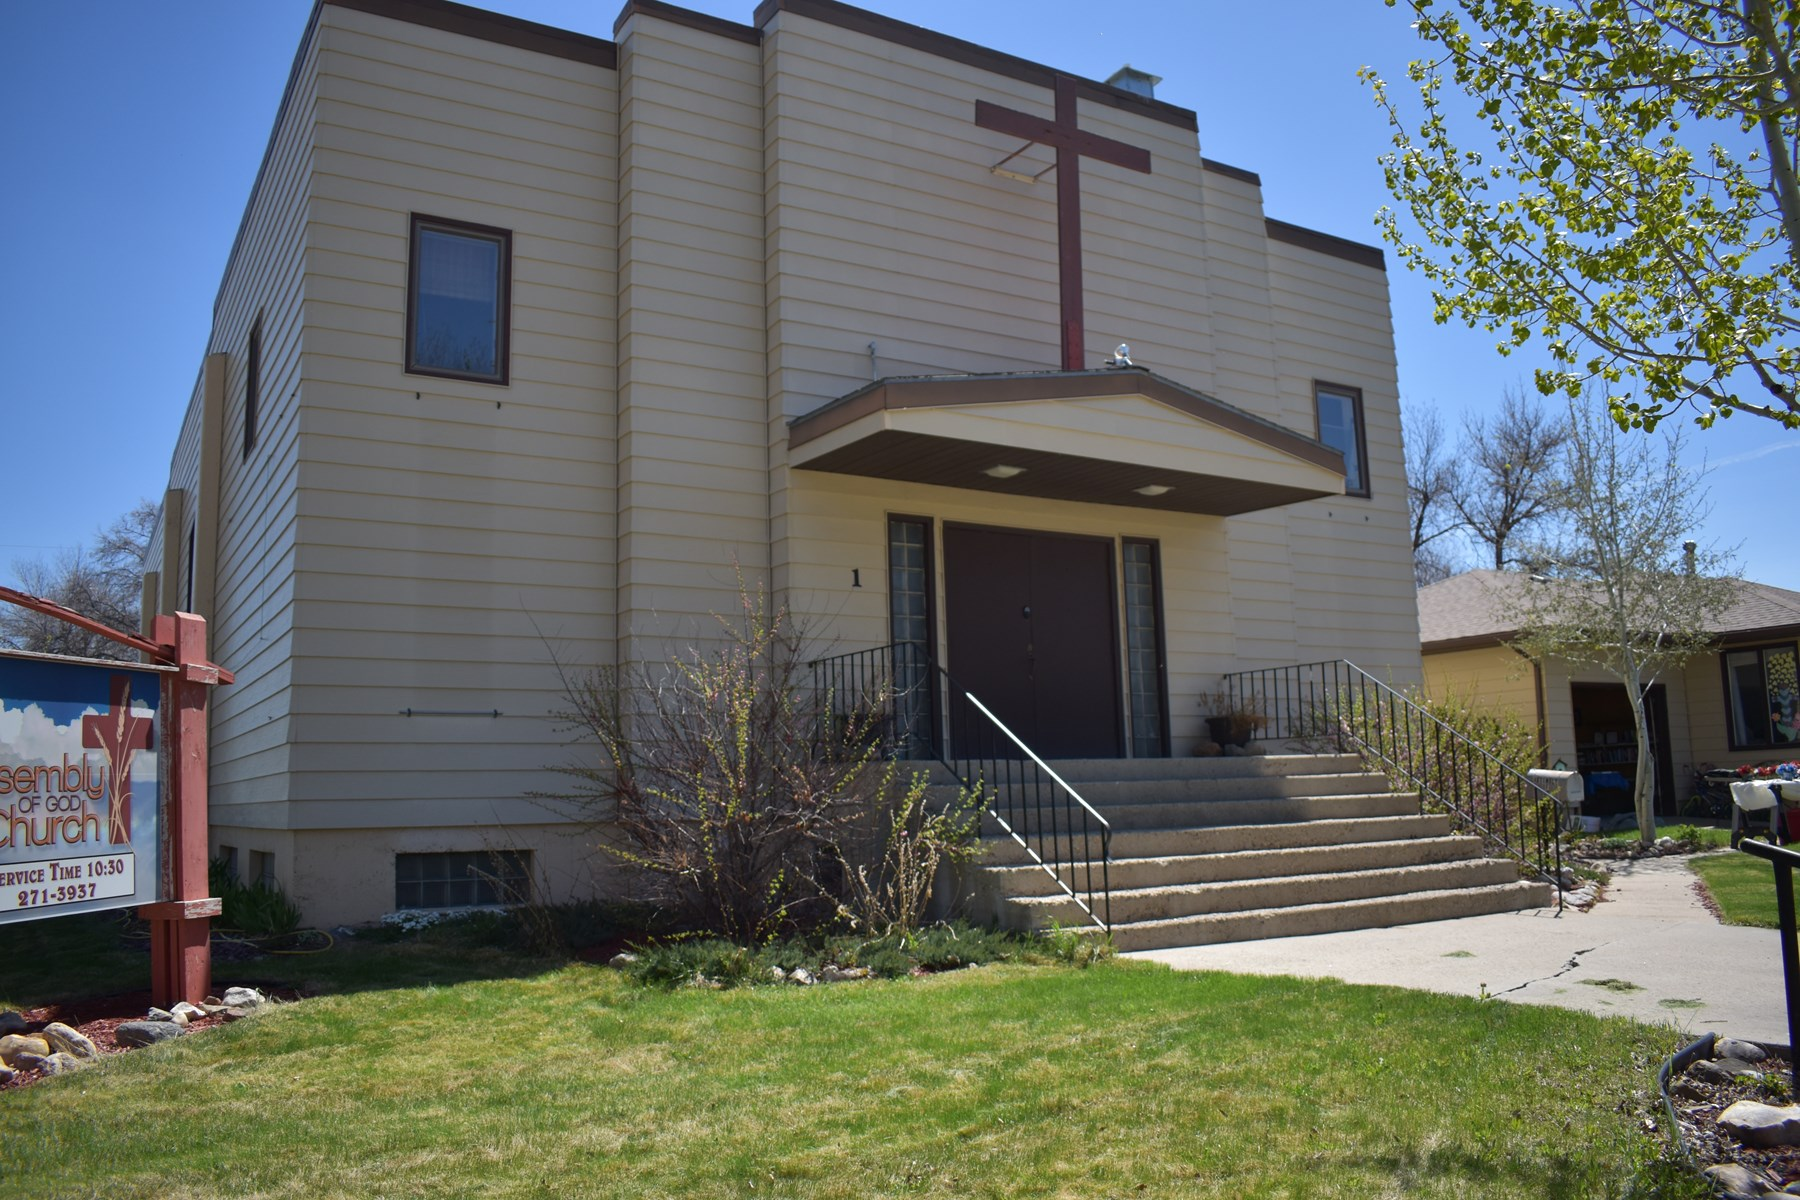 Home for sale in Conrad MT  Small town Montana living